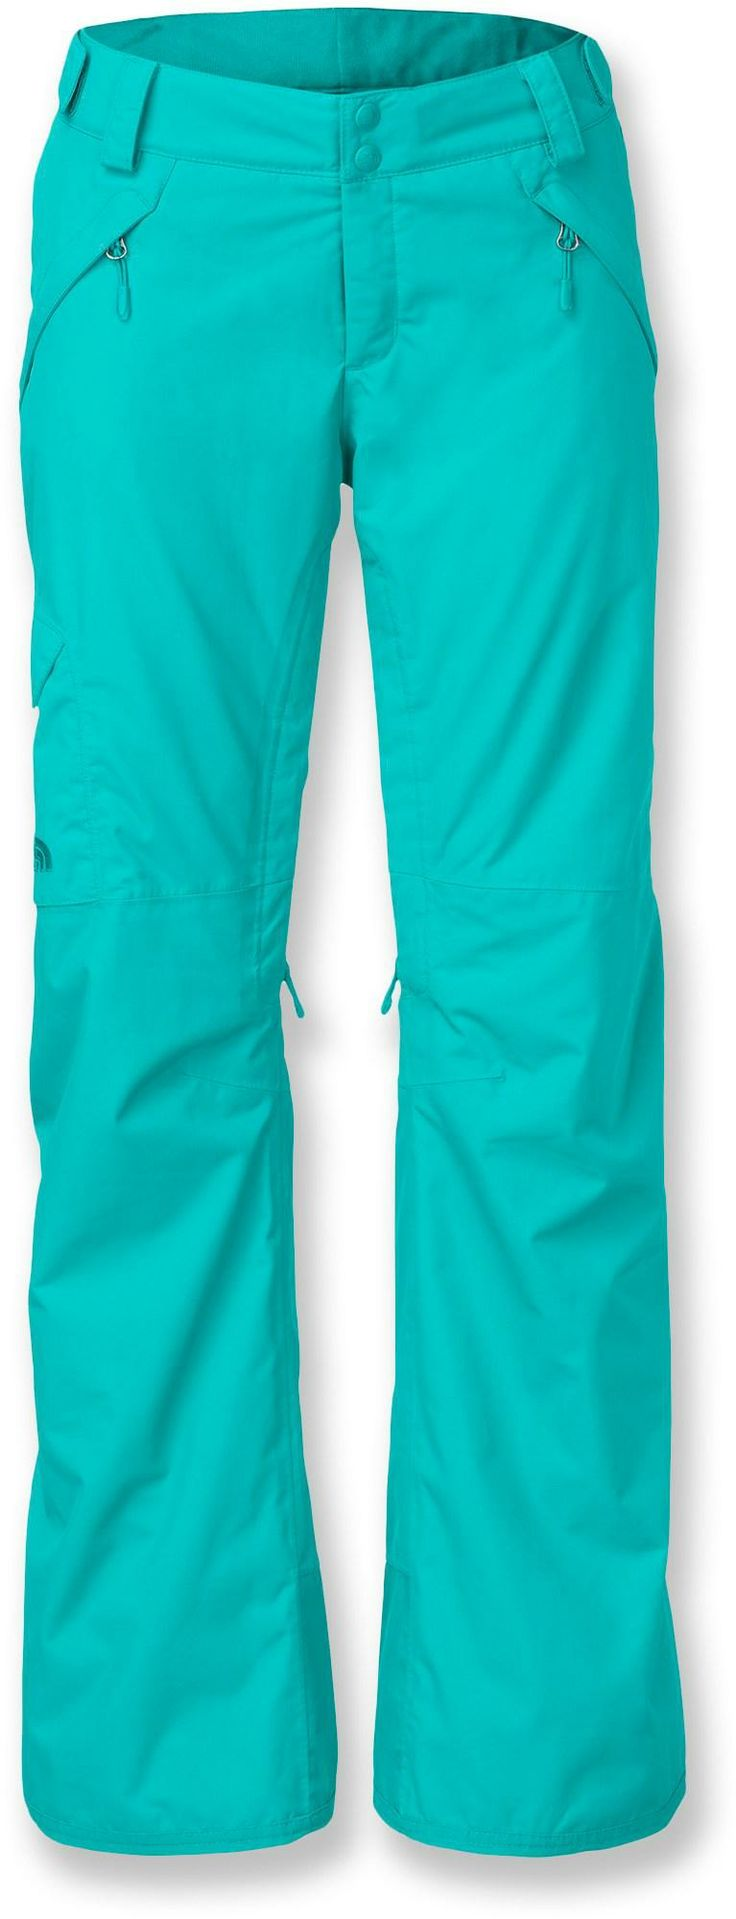 The North Face Freedom LRBC Insulated Pants  in a plethora of colors on REI.com.